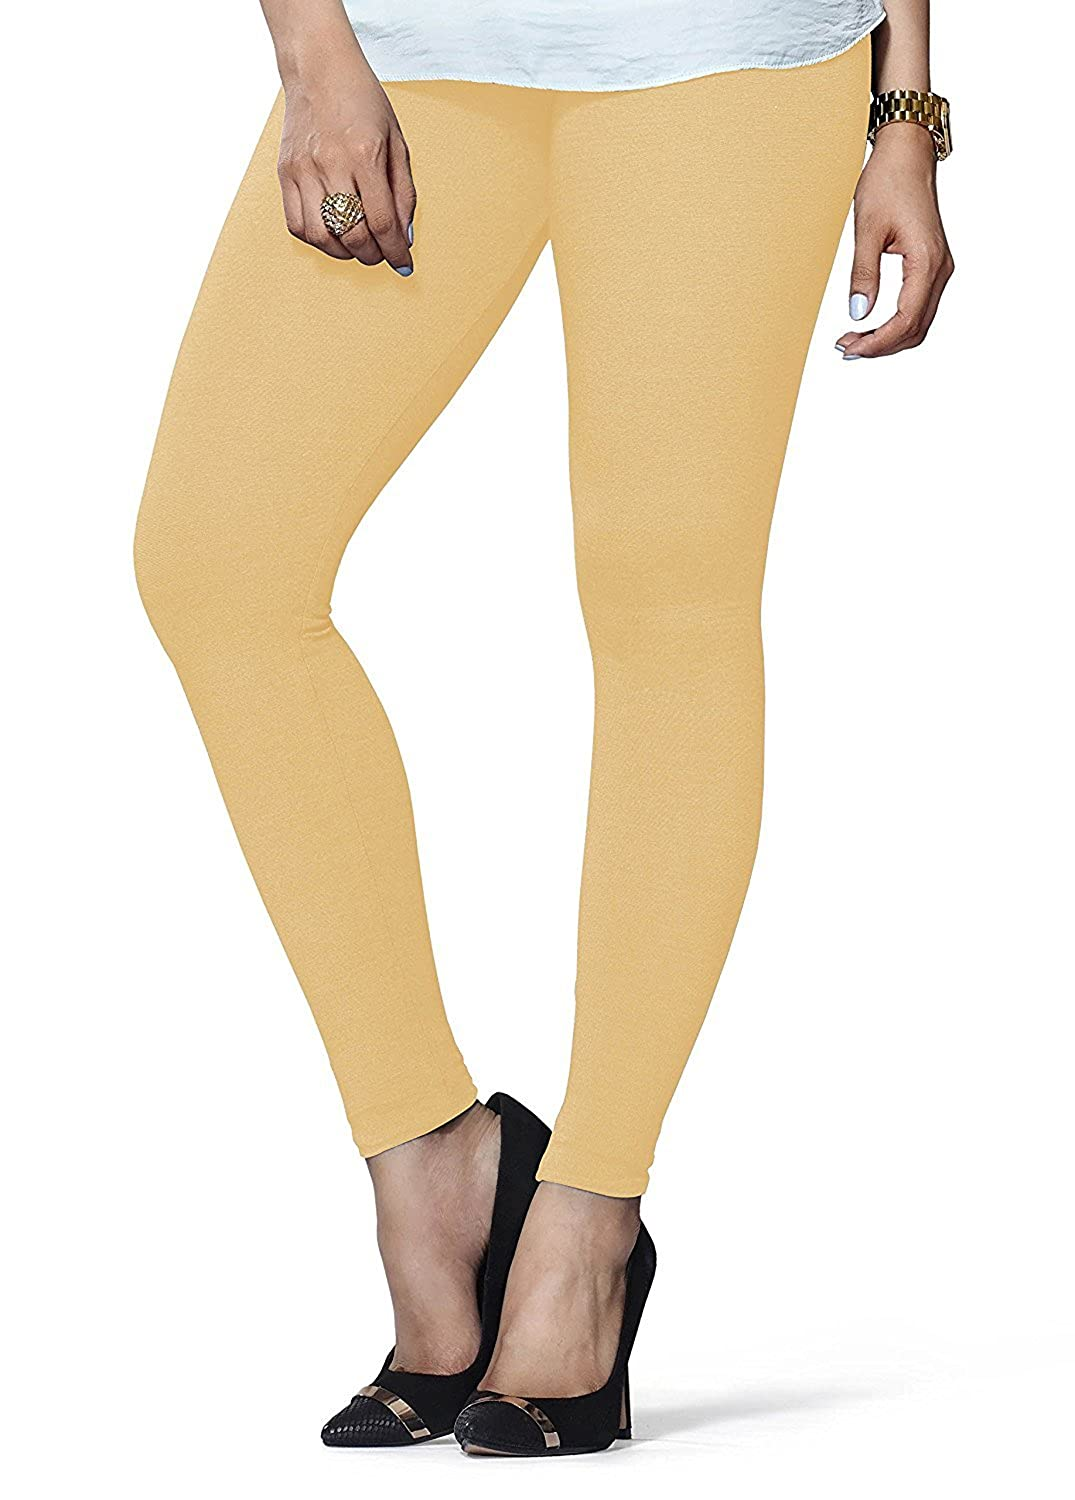 LUX LYRA Women's Cotton Churidaar and Ankle Length Leggings